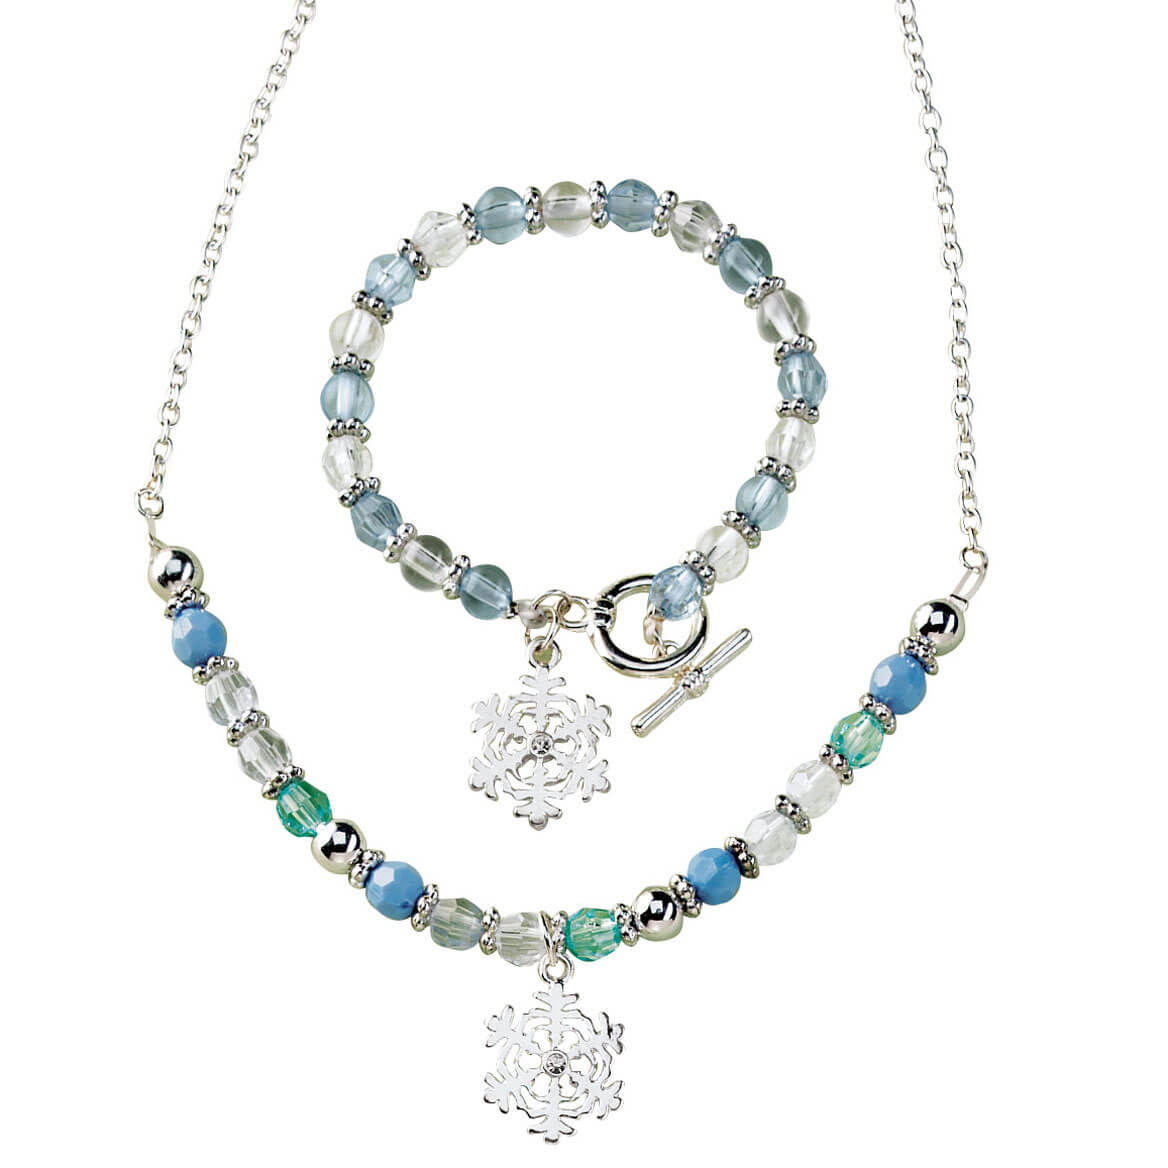 Snowflake Charm Jewelry Set